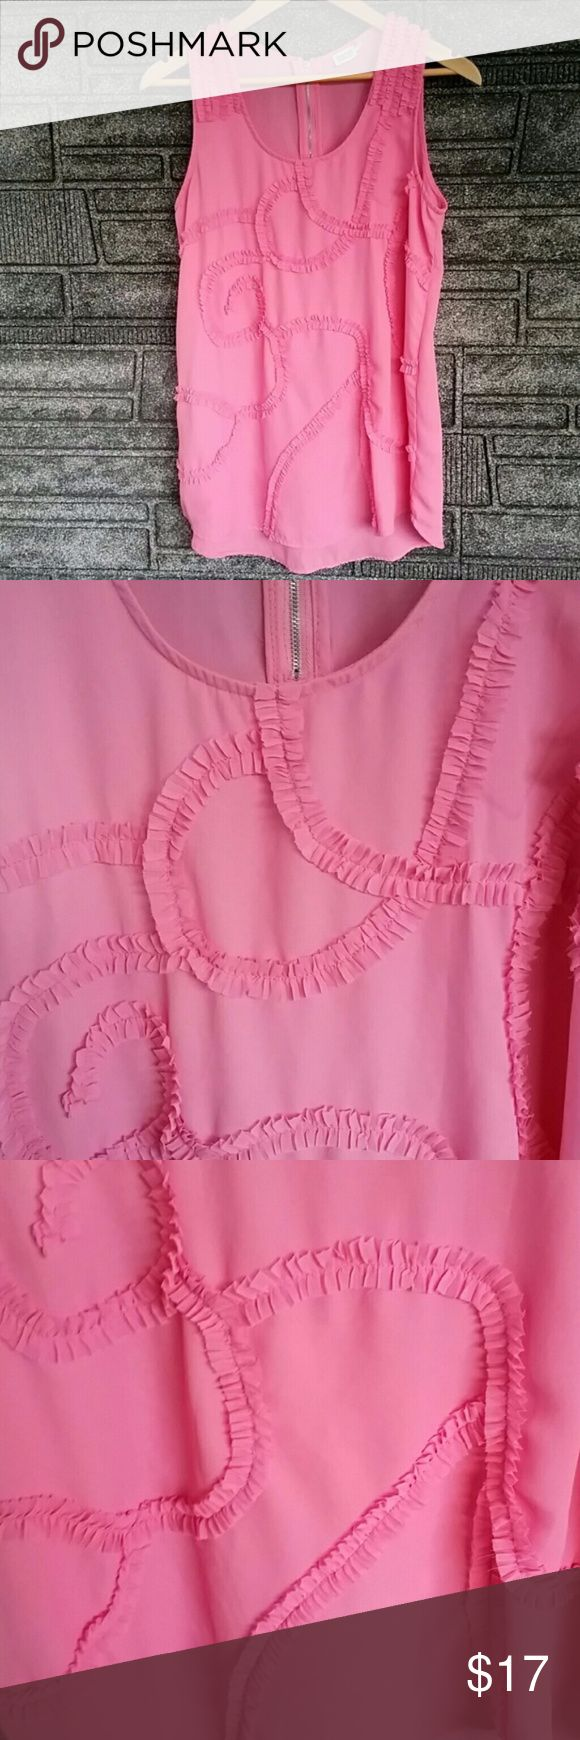 Charming Charlie hot pink blouse medium NWOT Charming Charlie sleeveless blouse features a crew neck with ruffle pattern throughout. Blouse has never been worn. Perfect with a pair of slacks! Measures approximately 30 inches from top to bottom, 15 inches armpit to armpit. 100% polyester. Charming Charlie Tops Blouses